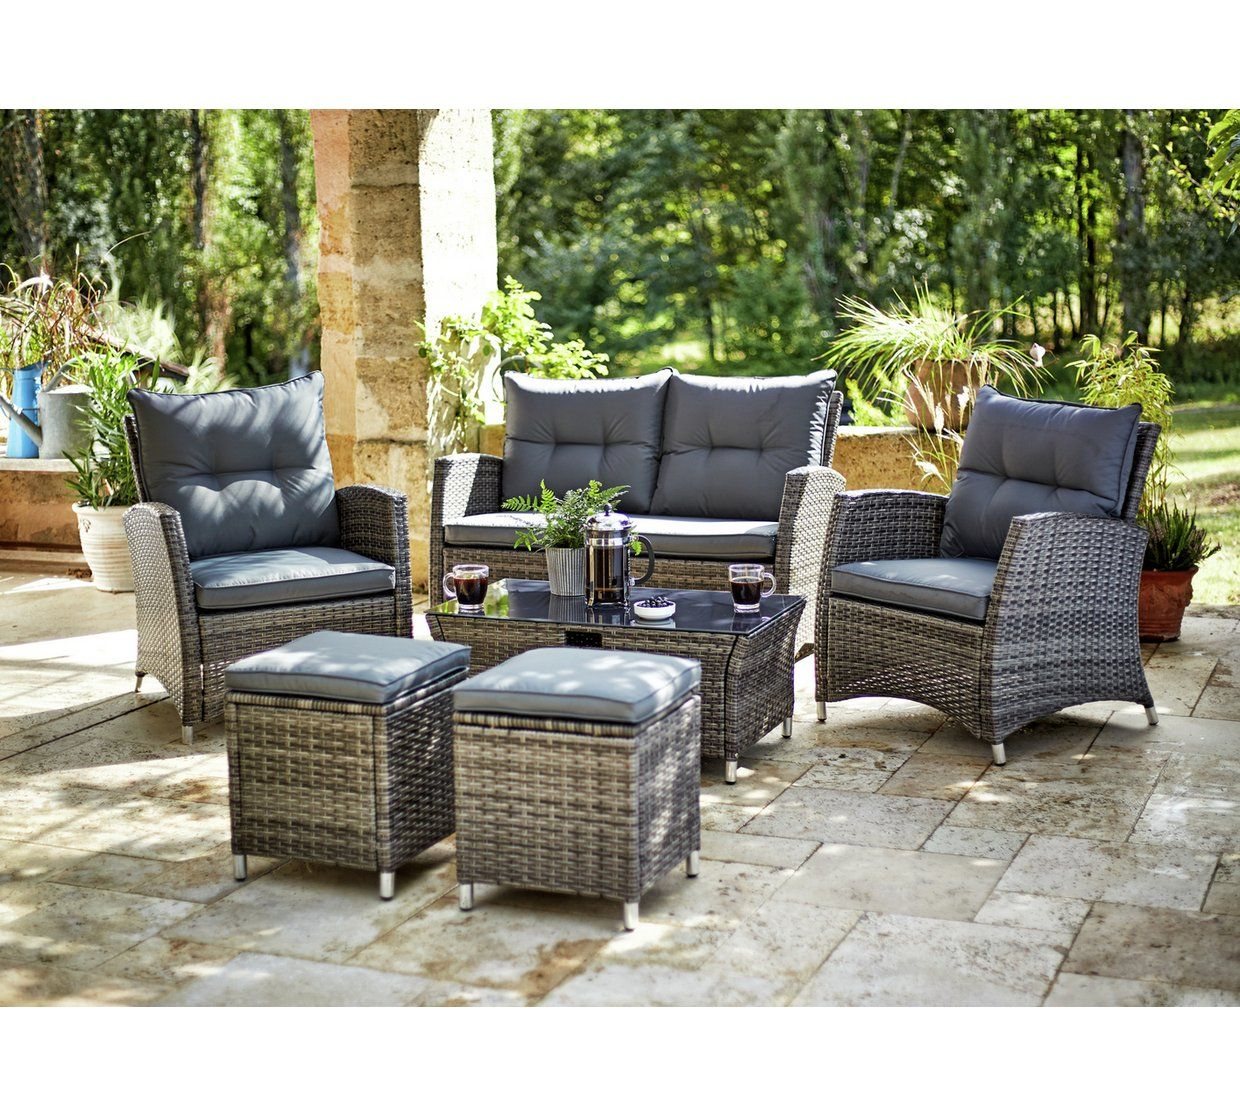 Buy Collection Rattan 7 Piece Set with Storage at Argos.co